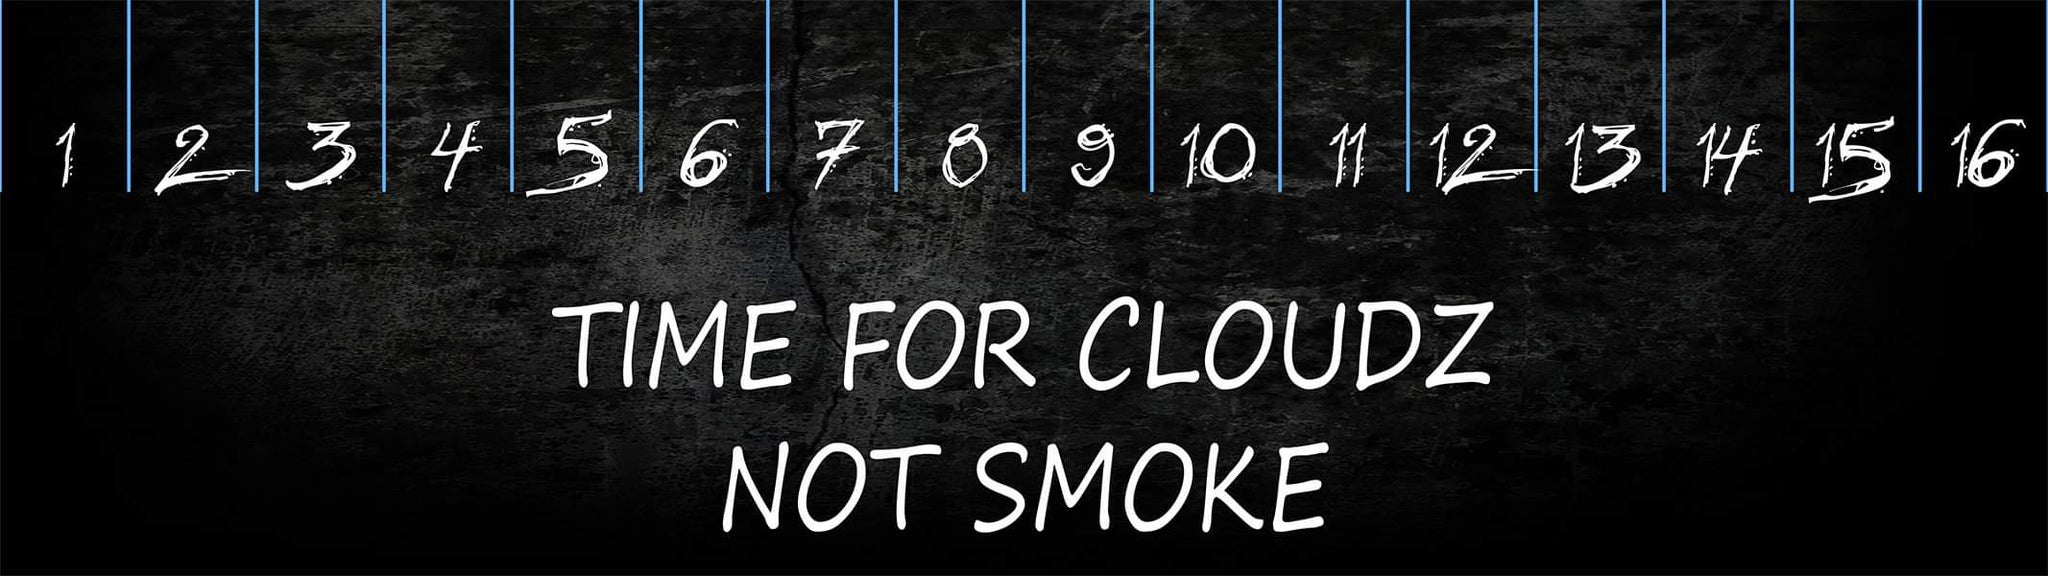 Time For Cloudz Not Smoke Comp Banner